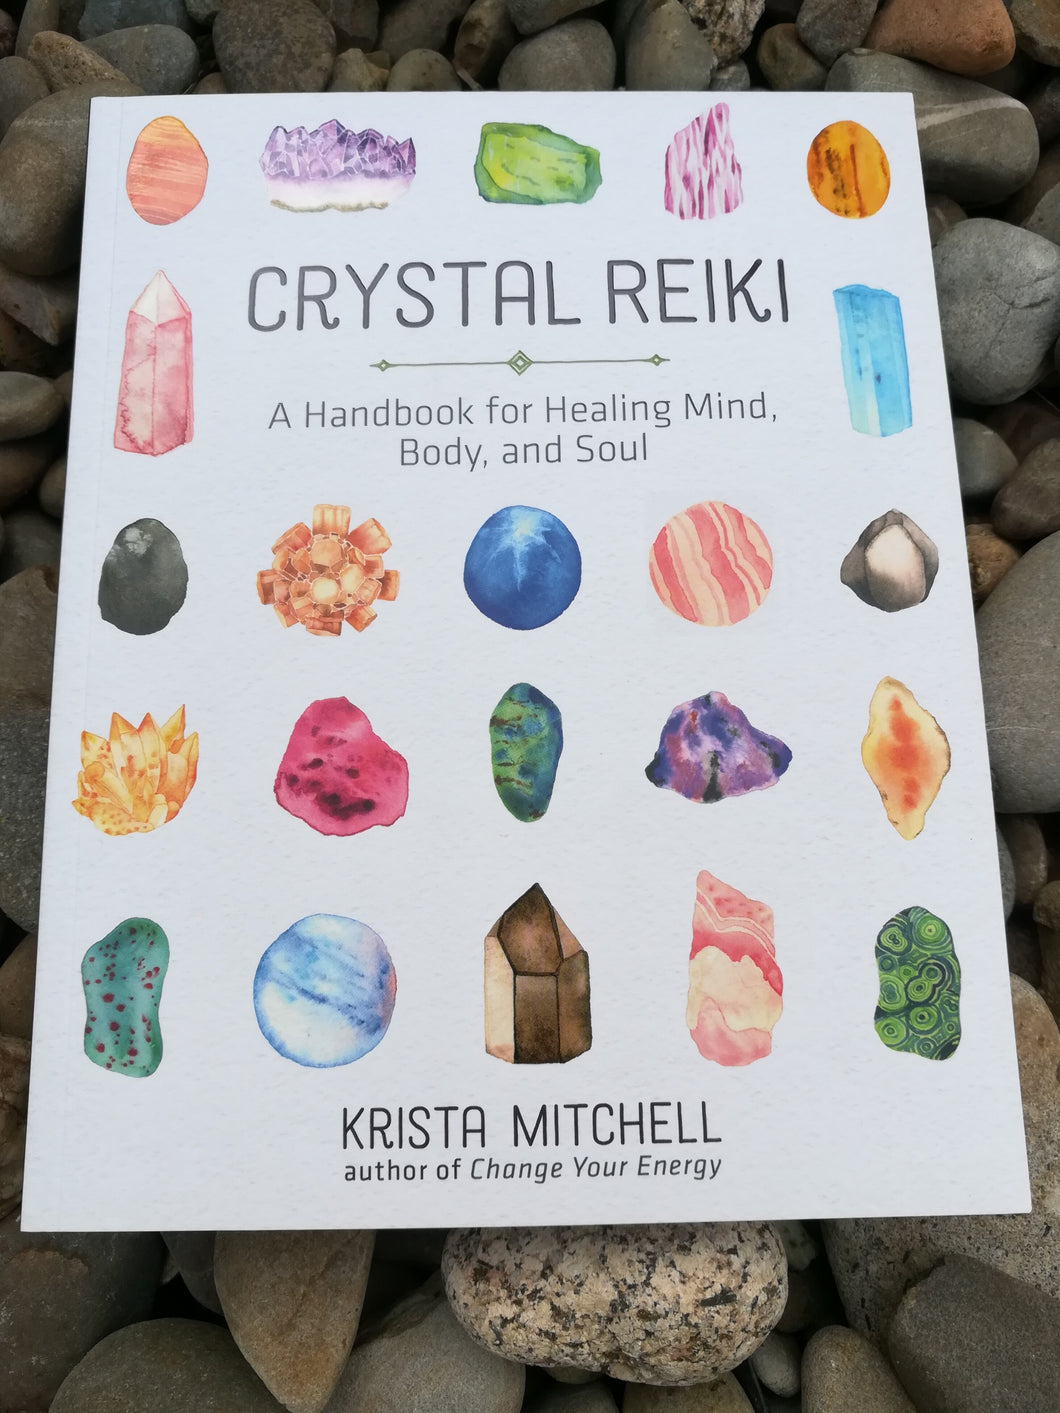 Crystal Reiki - A handbook for healing mind body and soul.